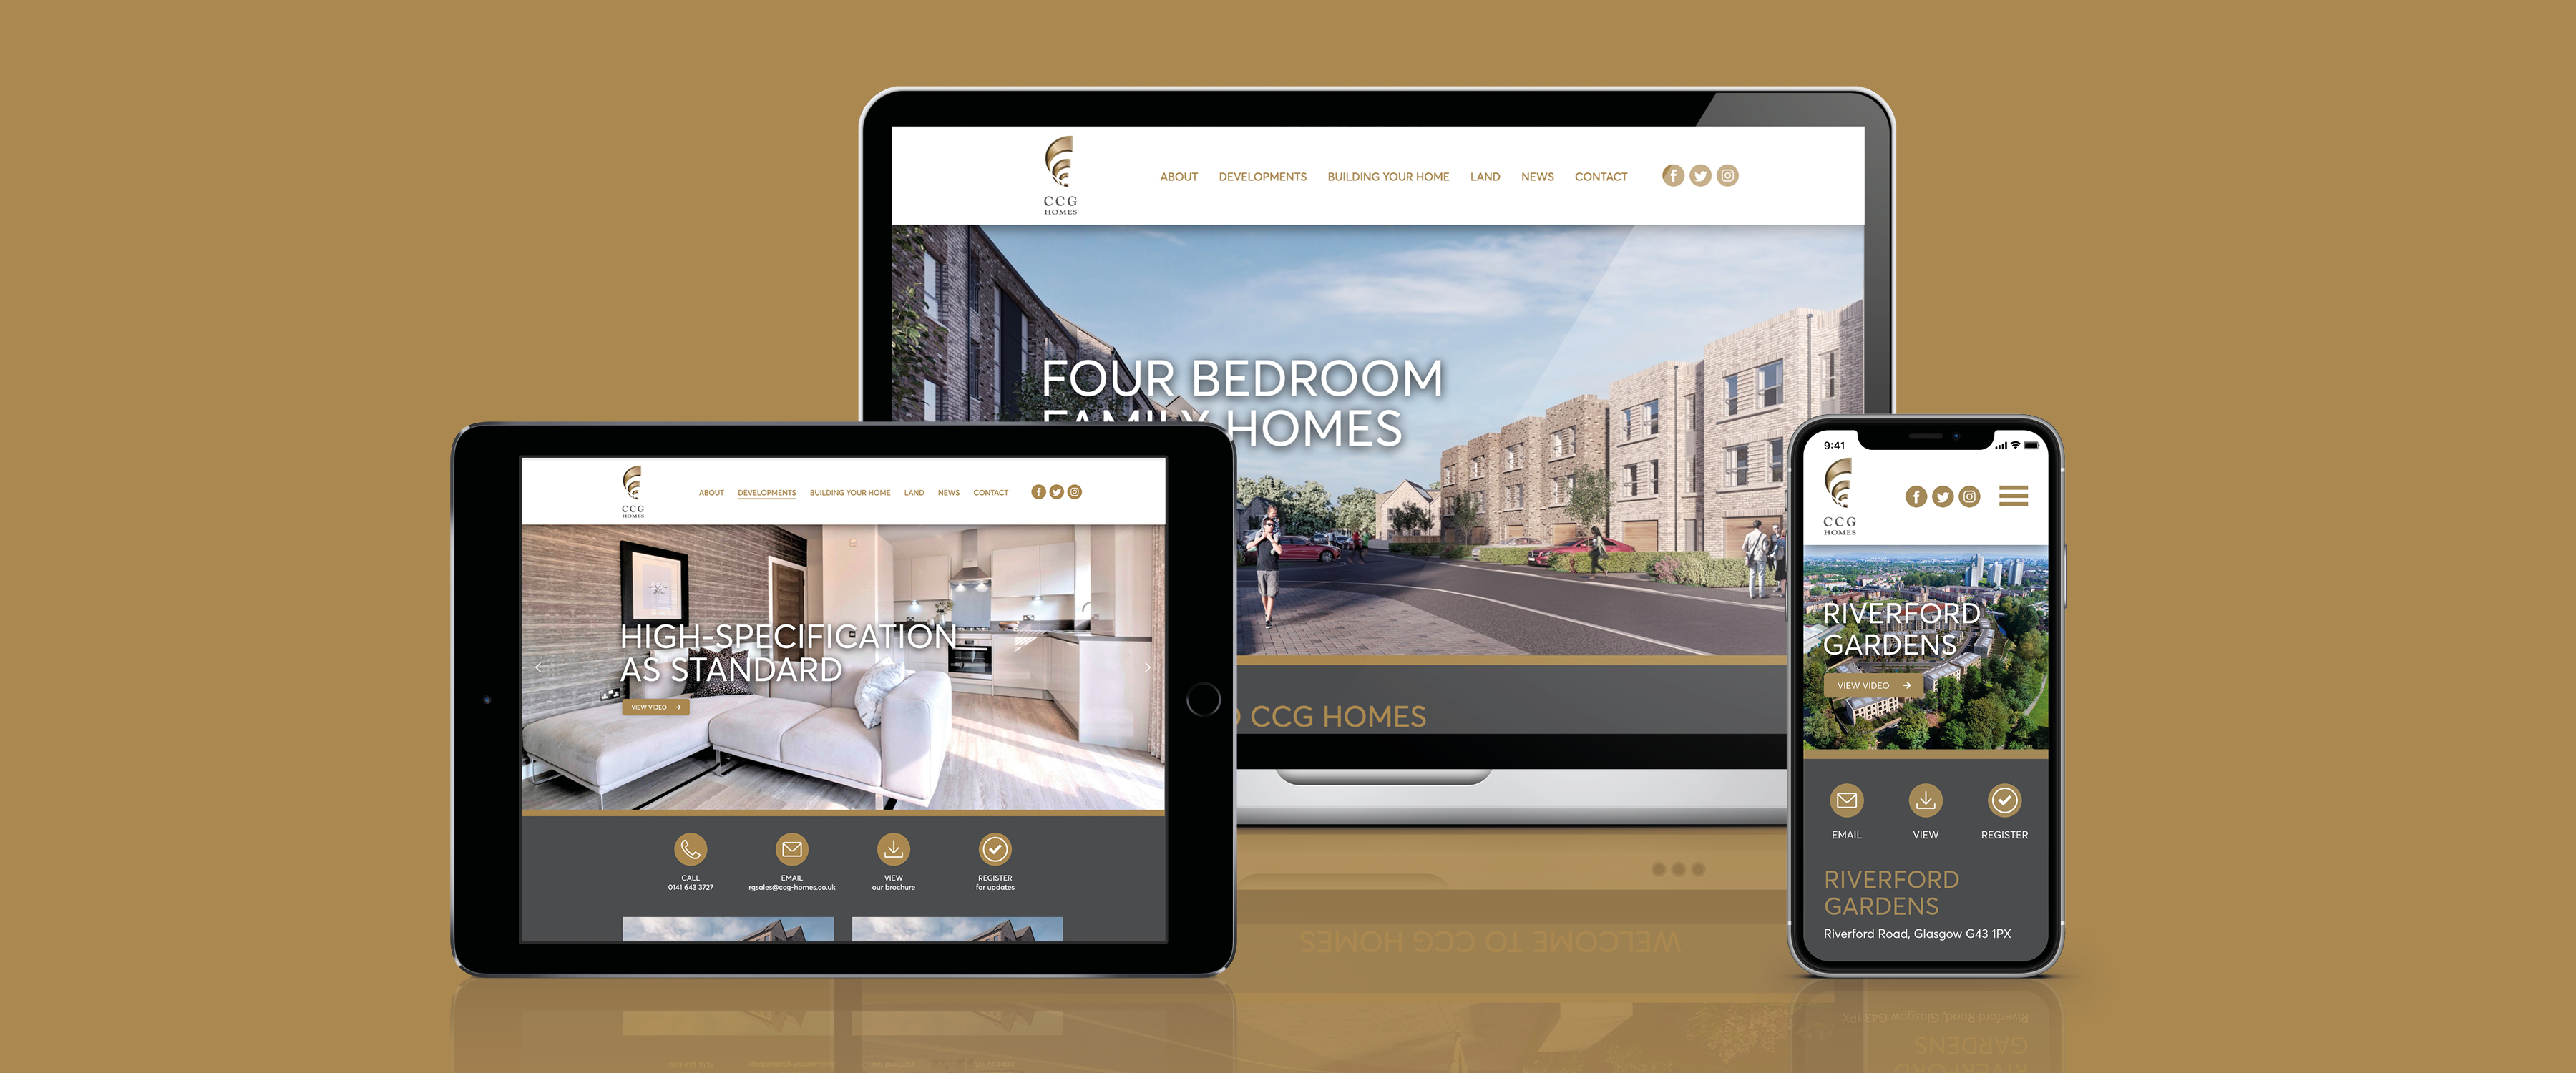 CCG Homes Website Mock Up 3600x1500